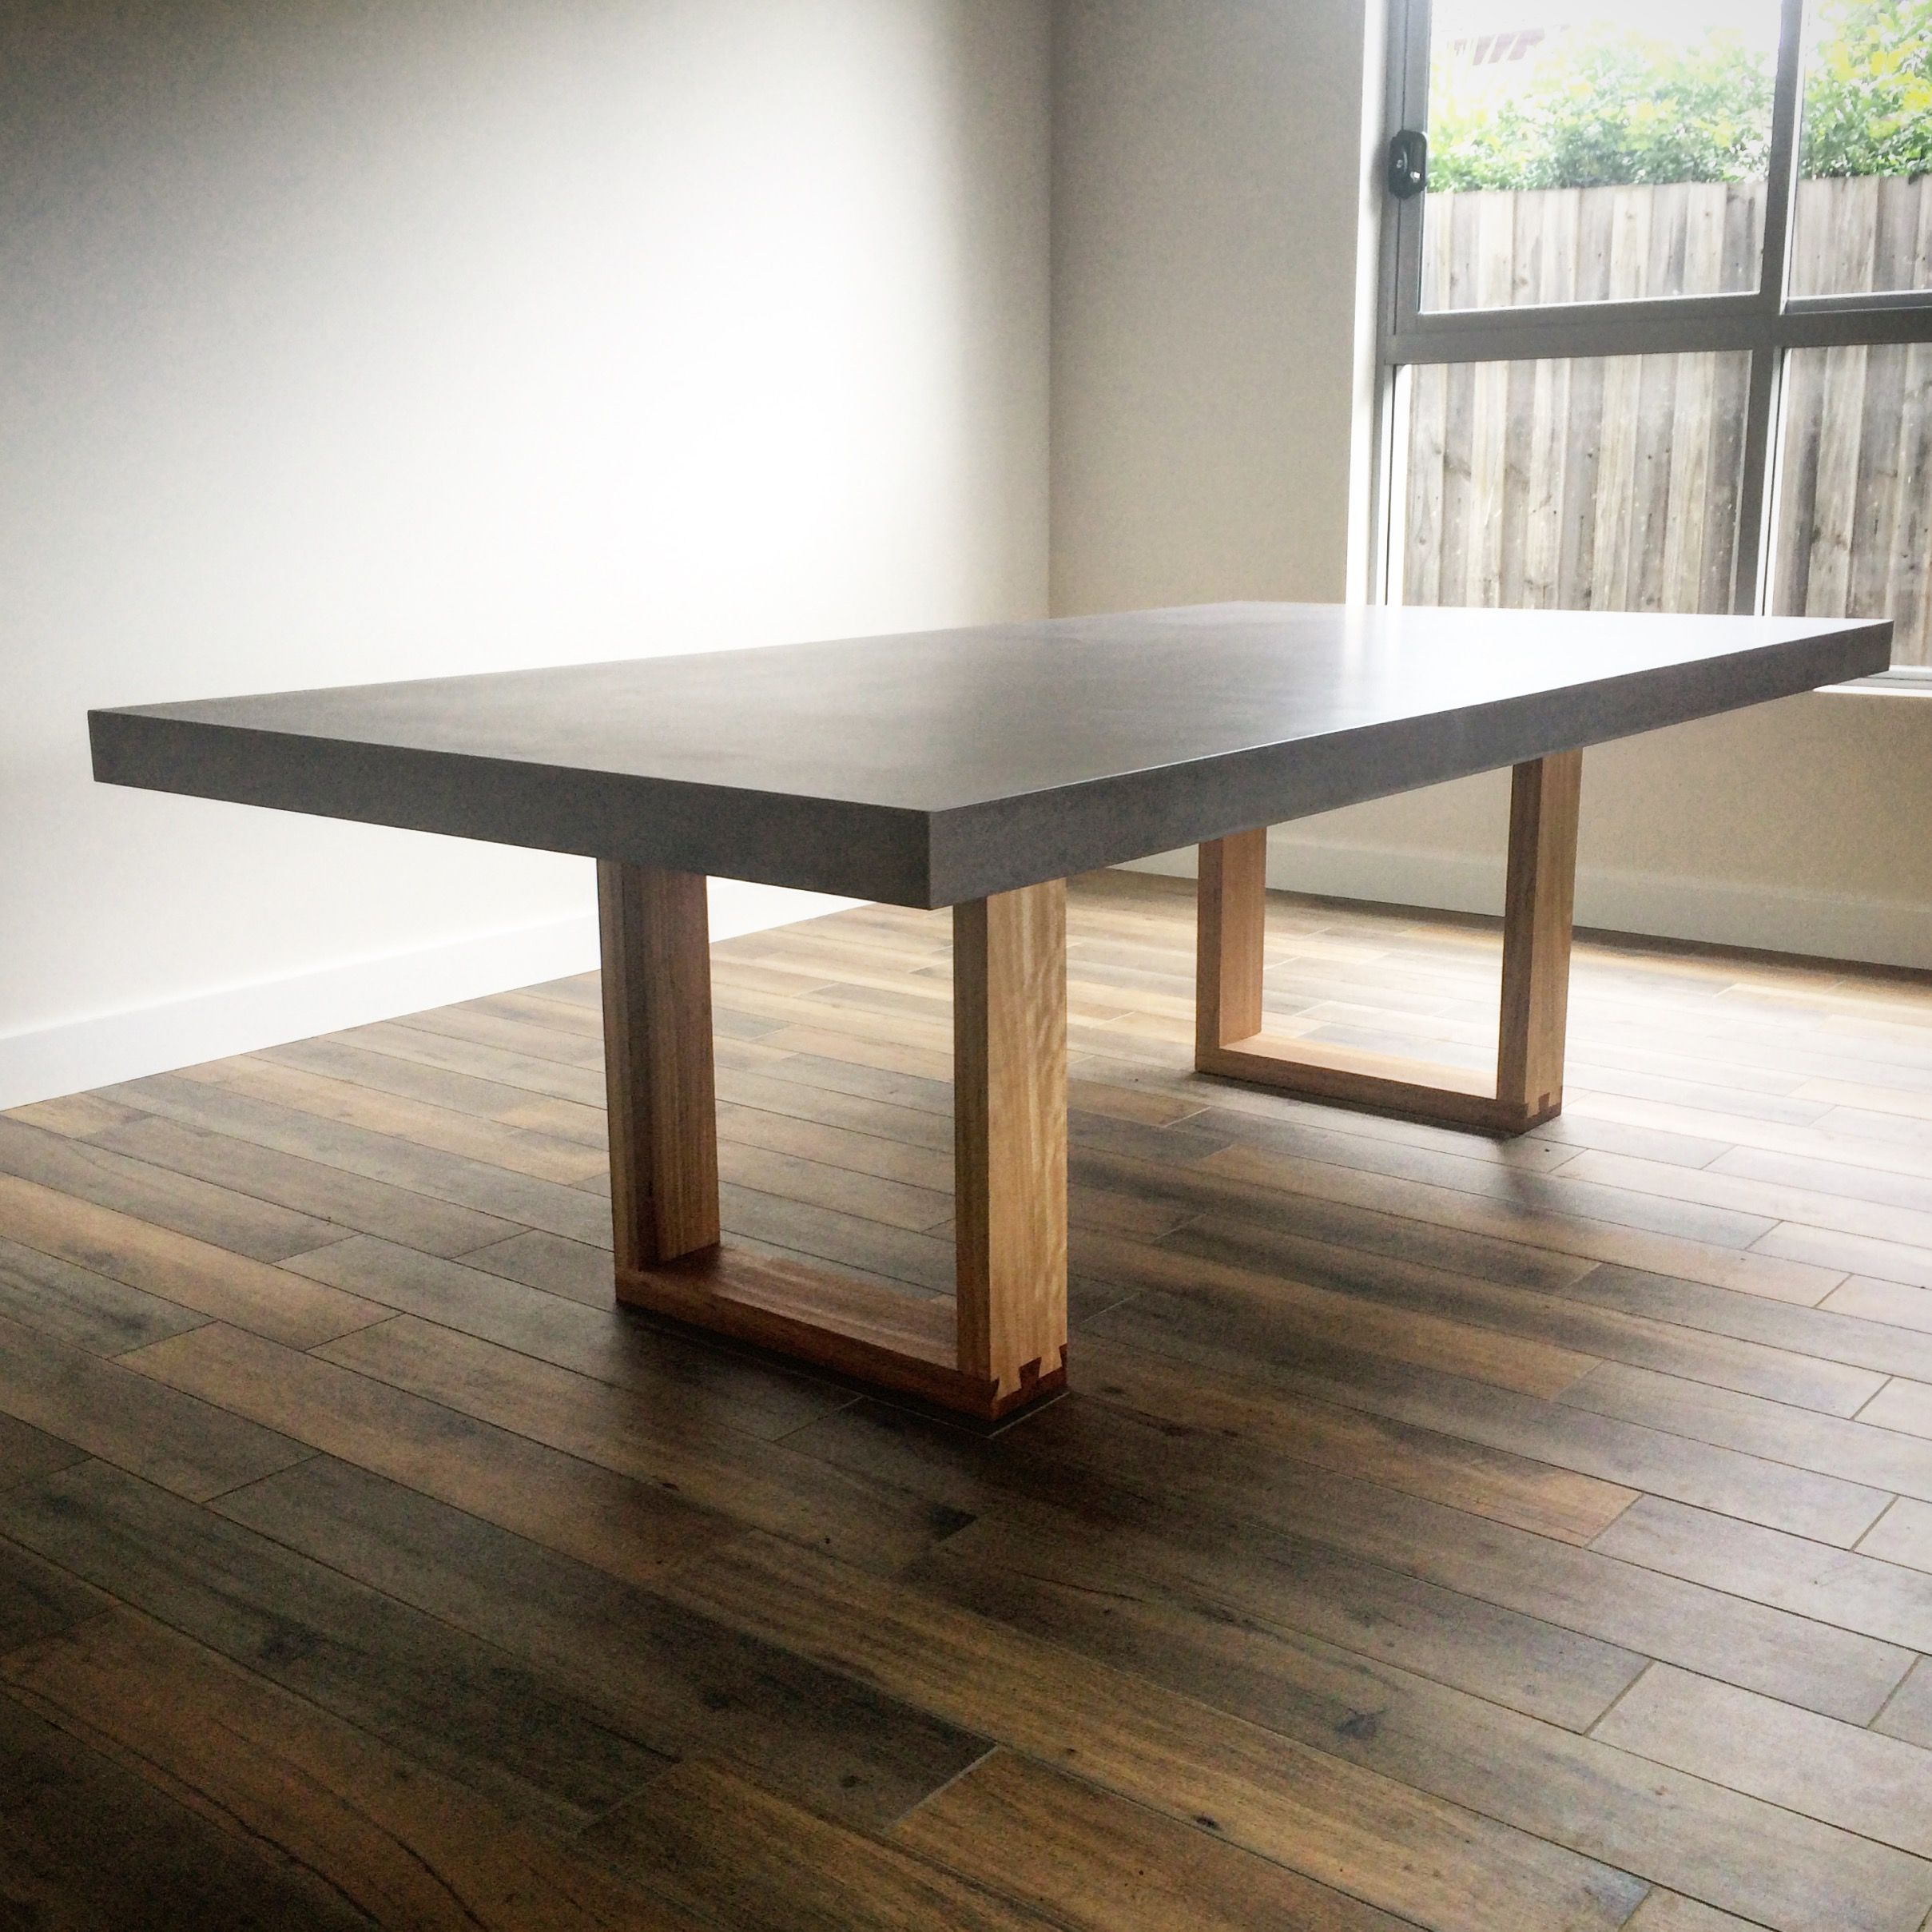 Polished Concrete Table Top With A Timber Base By Mitchell Bink Design Www Mbconcretedesign Au